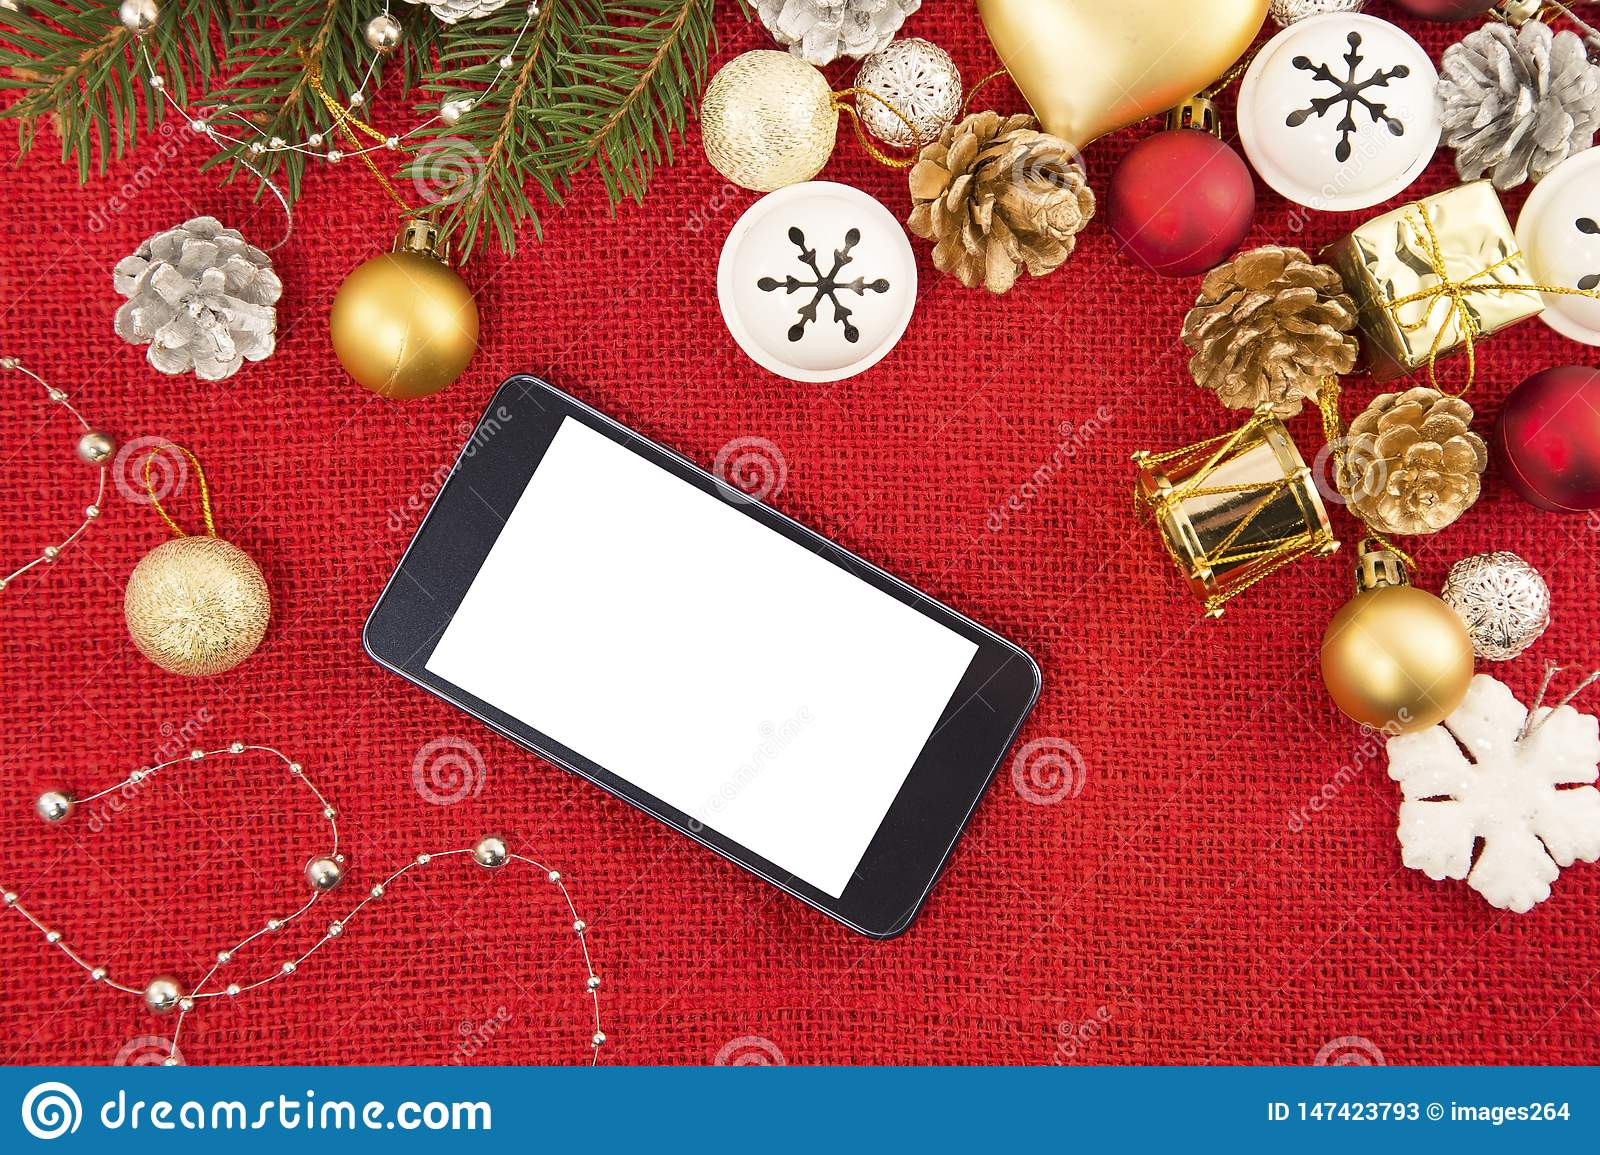 Mobile phone and the Christmas decoration